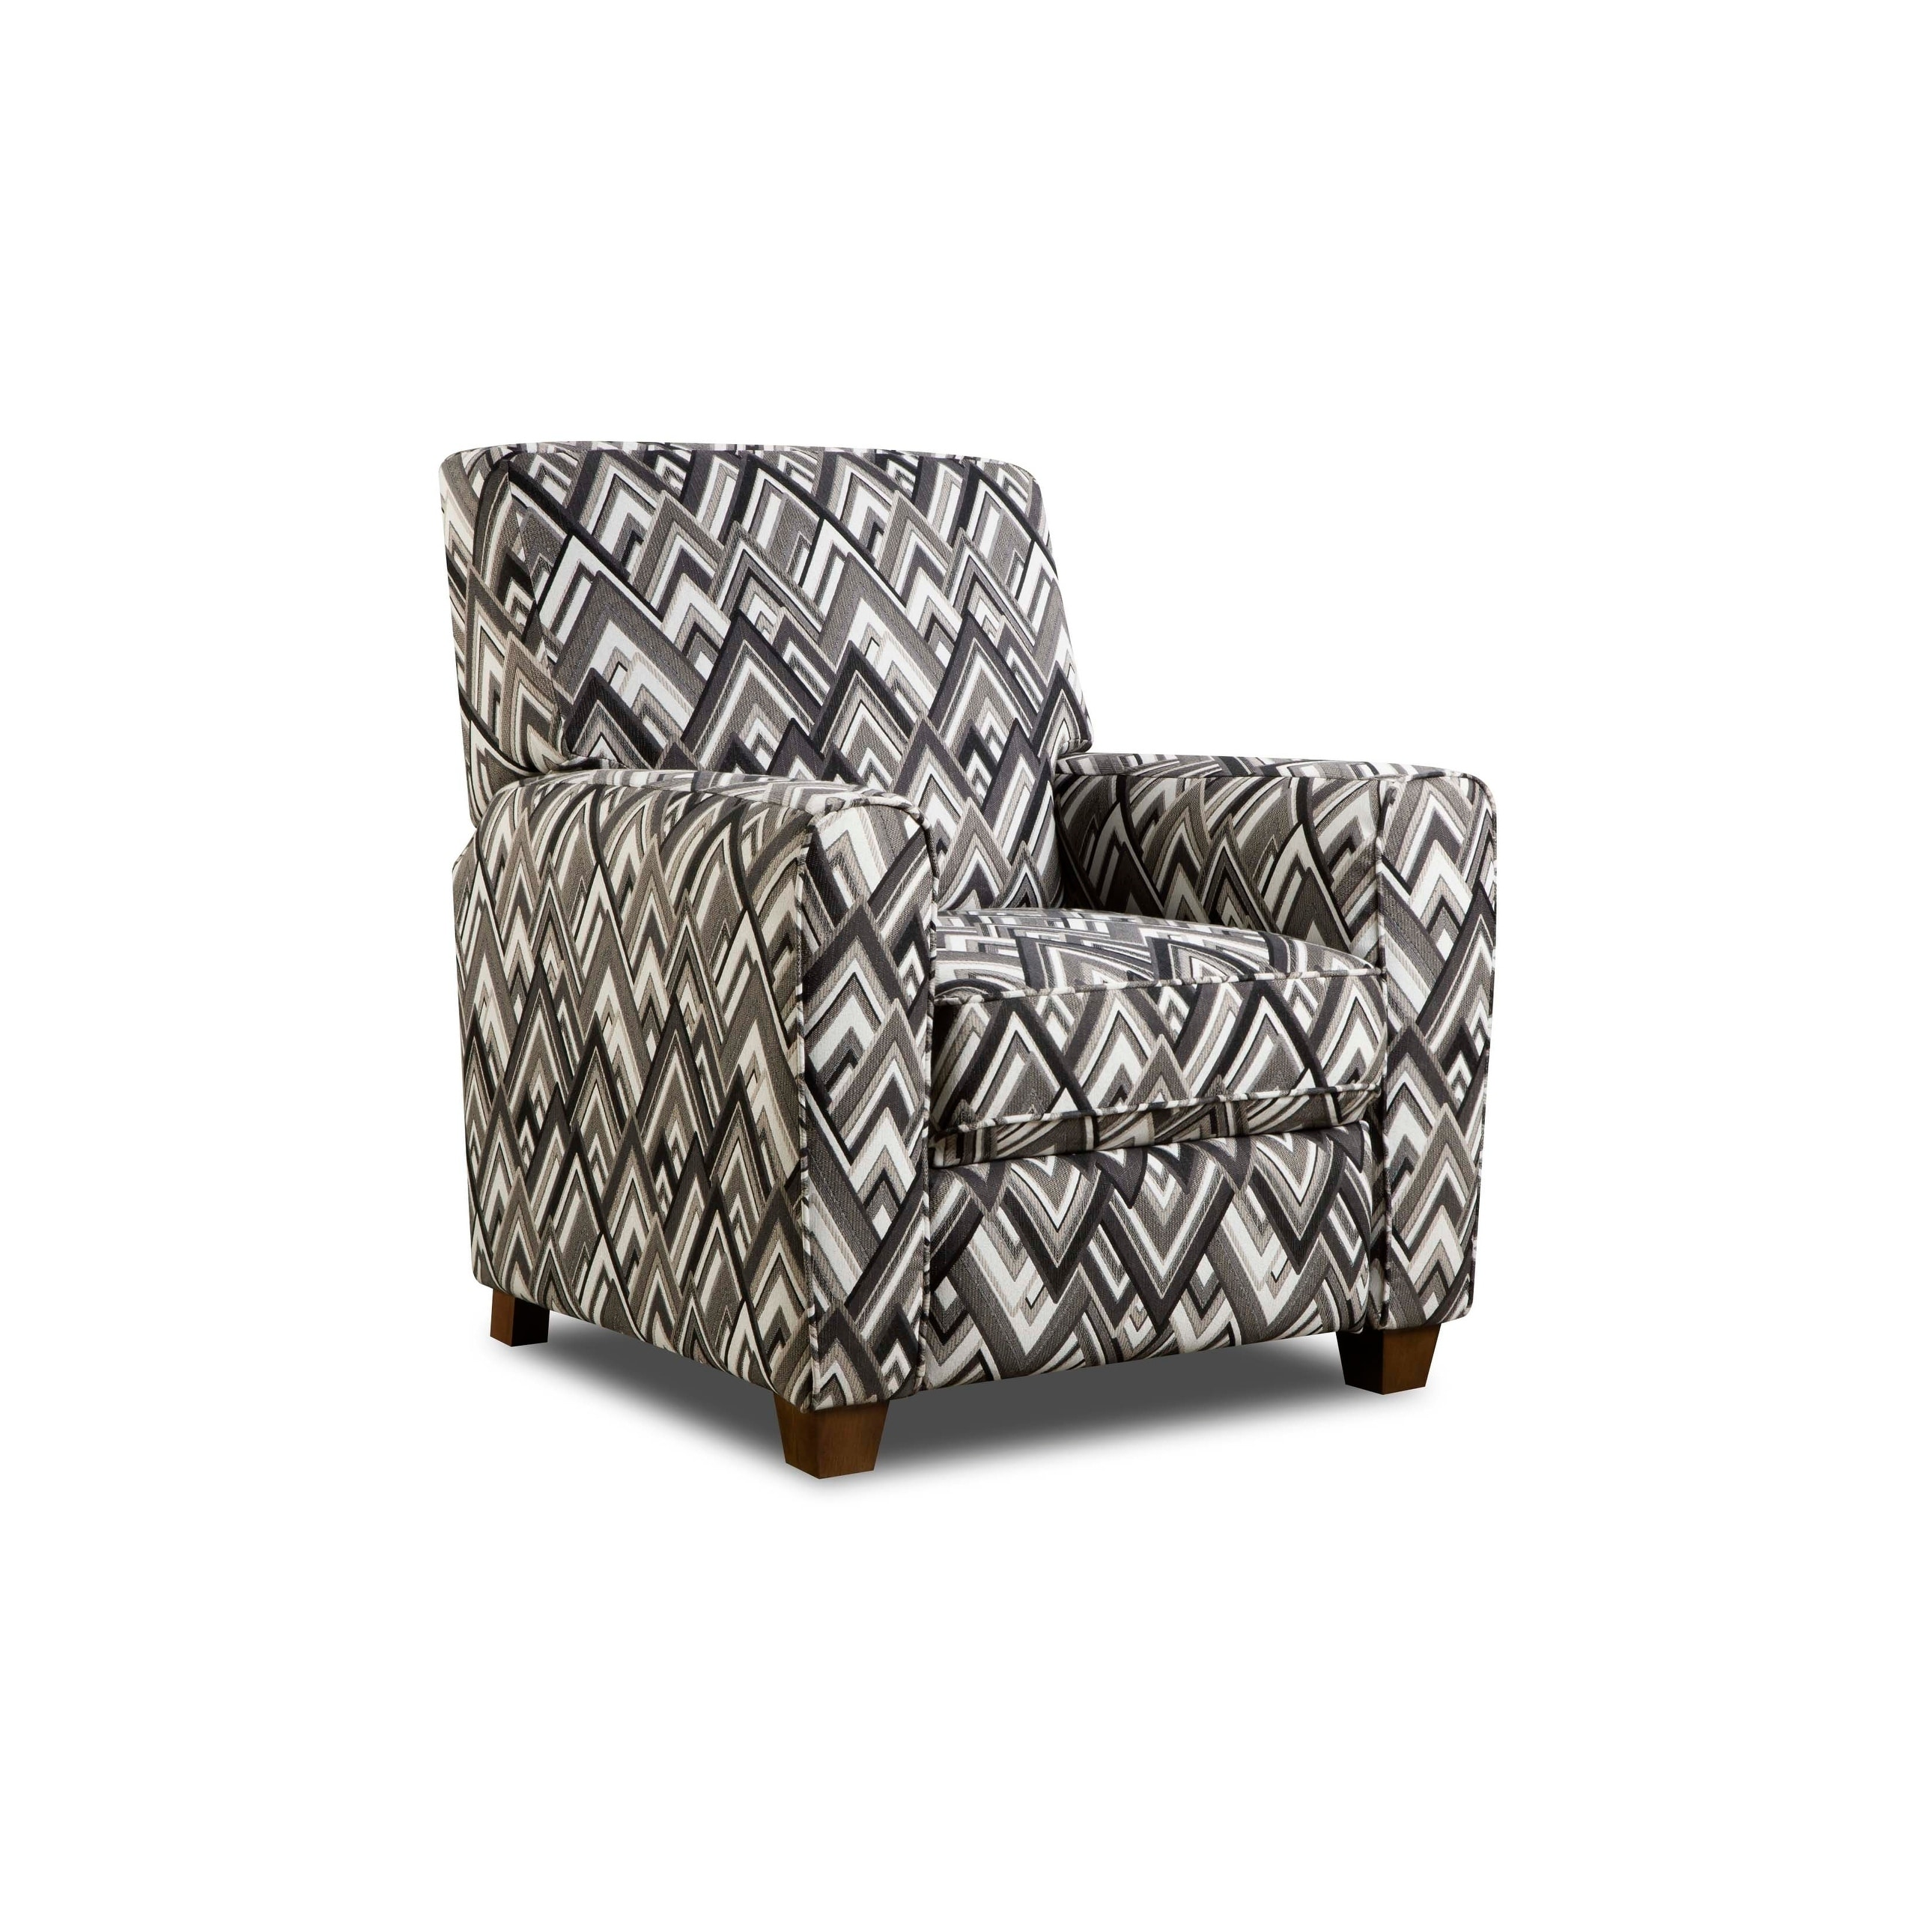 Sensational Brighton Chic Chevron Recliner Grey And White Red And Gold Gmtry Best Dining Table And Chair Ideas Images Gmtryco